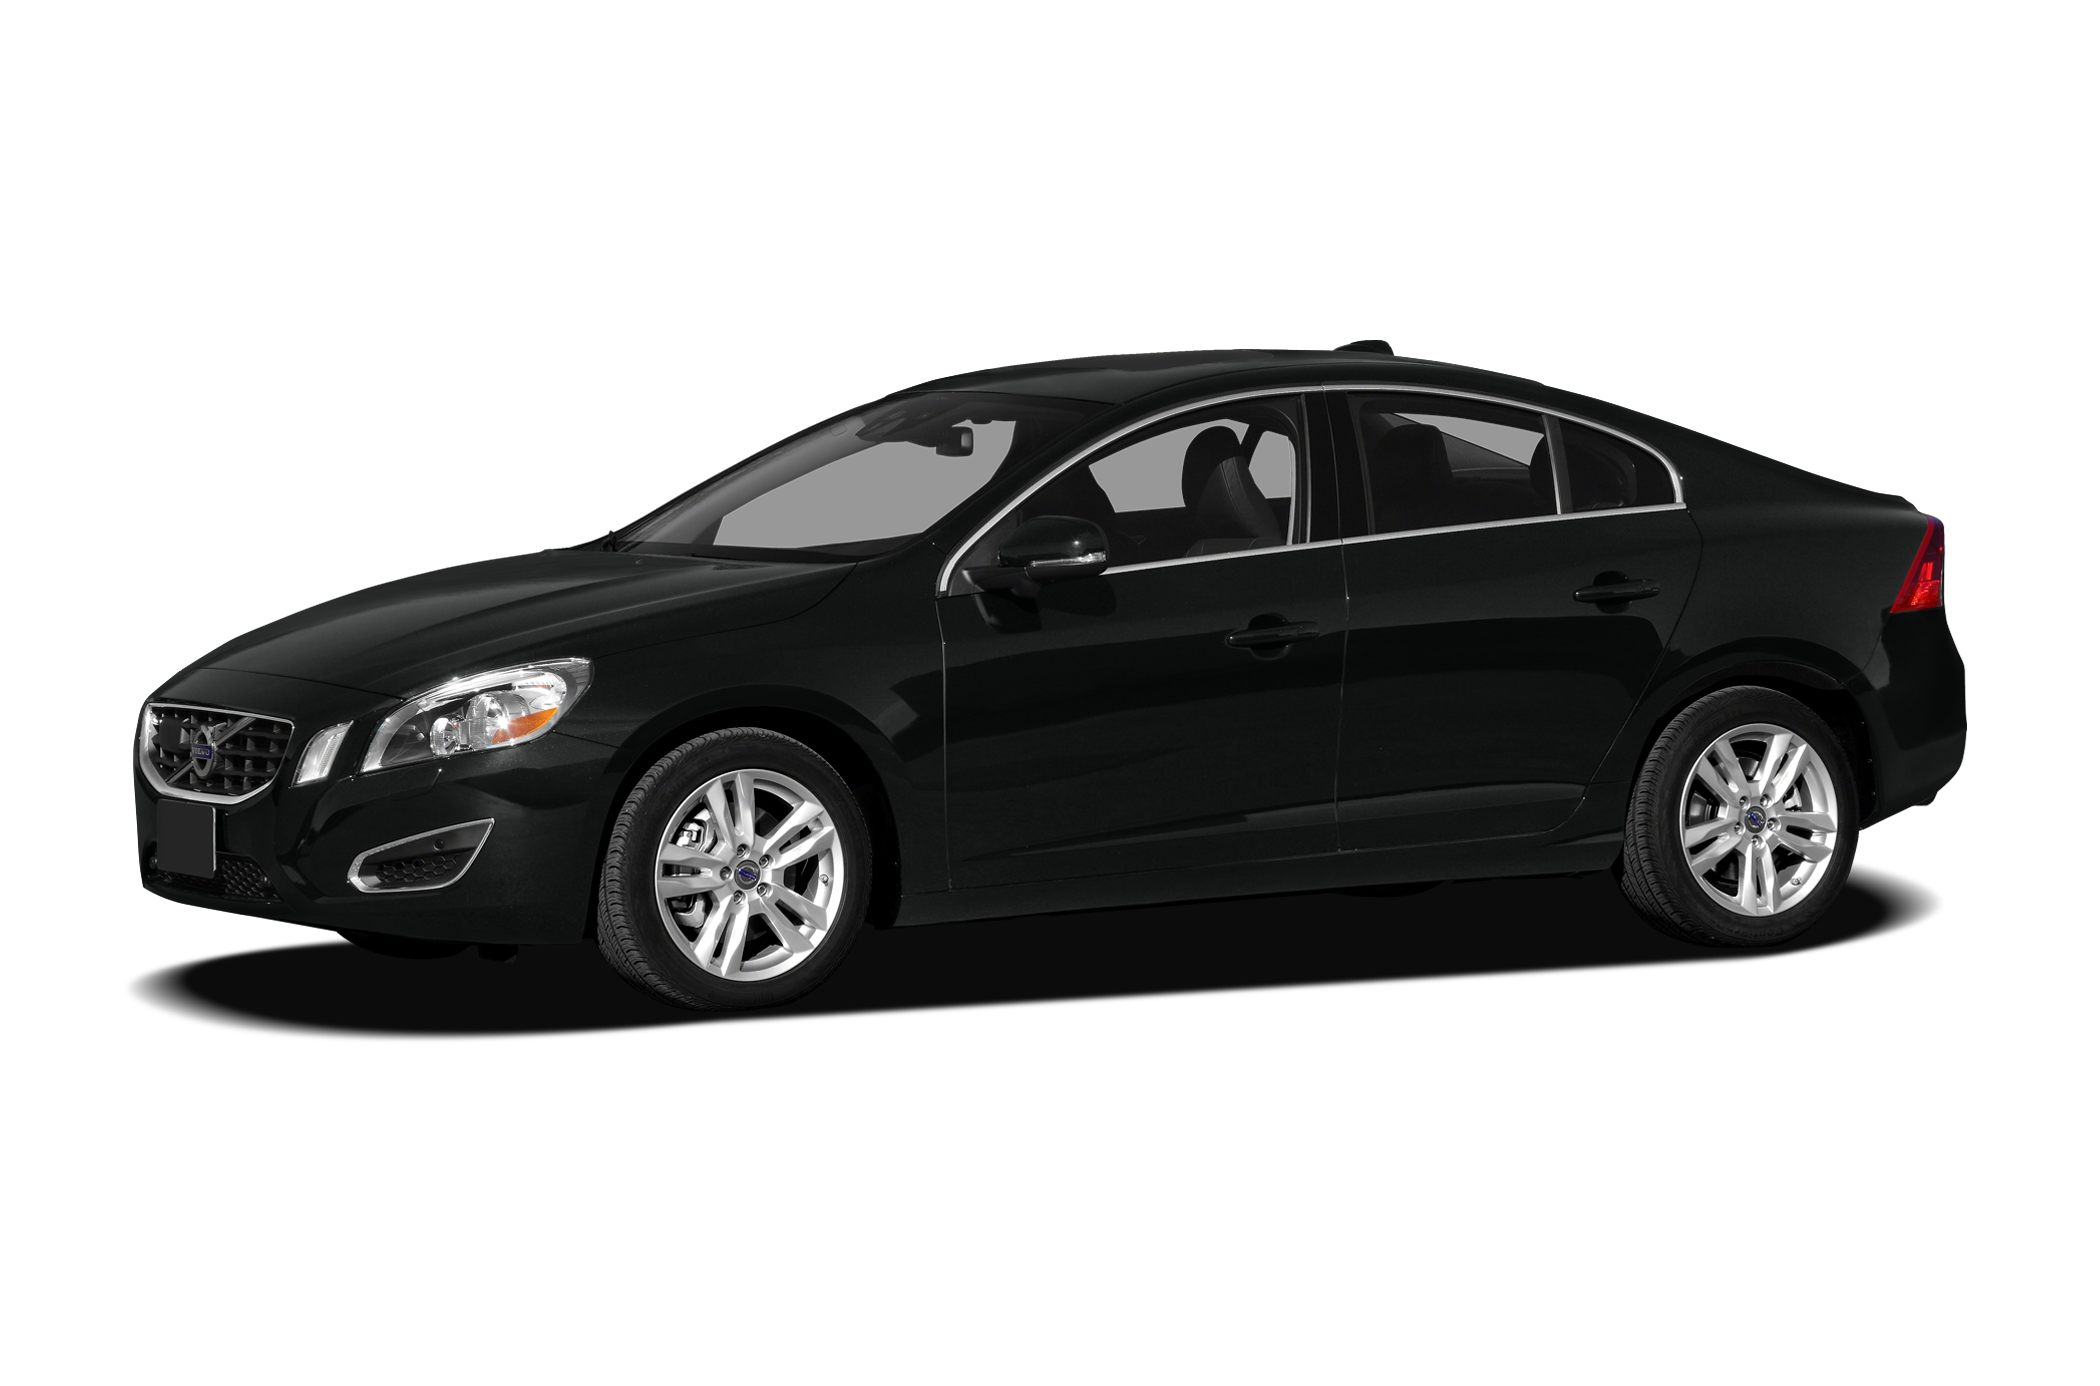 2011 Volvo S60 T6 Sedan for sale in Columbia for $19,900 with 47,243 miles.